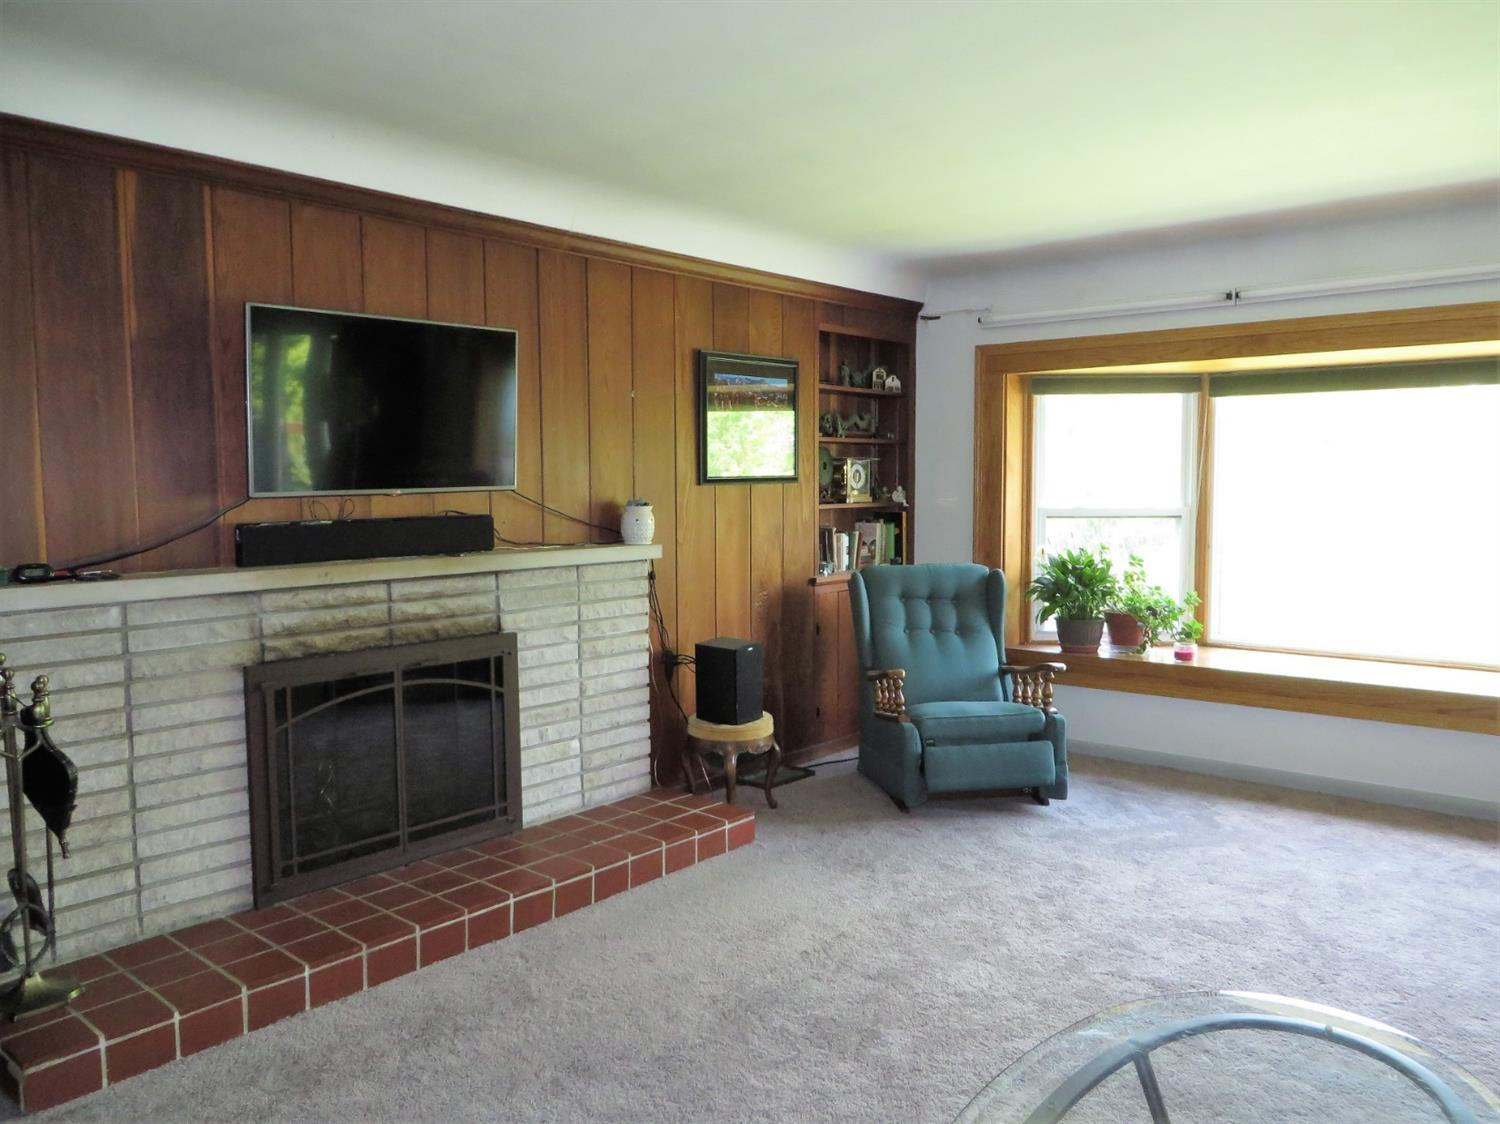 Photo 2 for 476 Beechtree Dr Finneytown, OH 45224